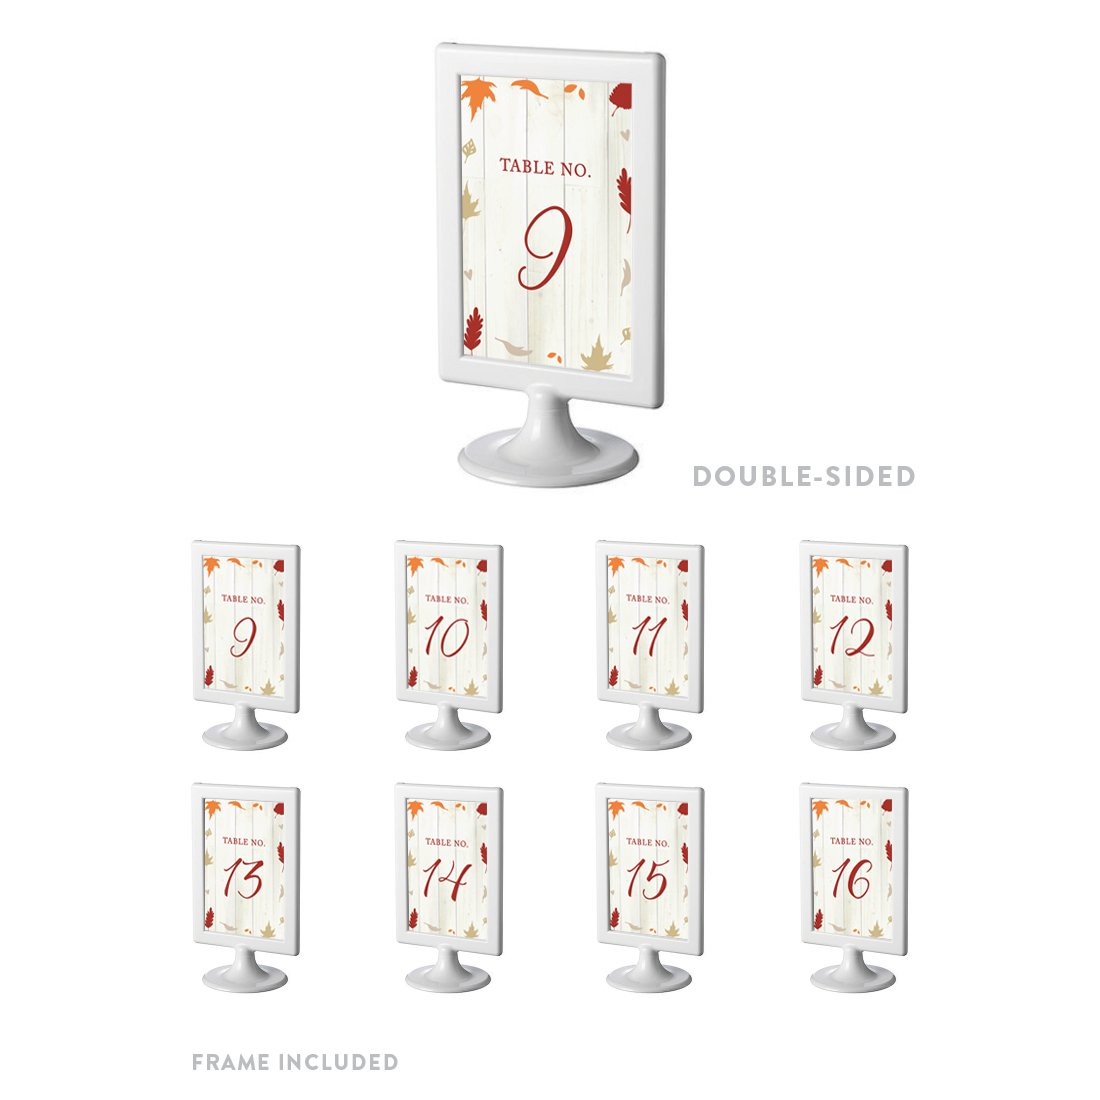 Andaz Press Fallin' in Love Autumn Fall Leaves Wedding Party Collection, Framed Table Numbers 9 - 16 on Perforated Paper, Double-Sided, 4 x 6-inch, 1 Set, Includes Frames